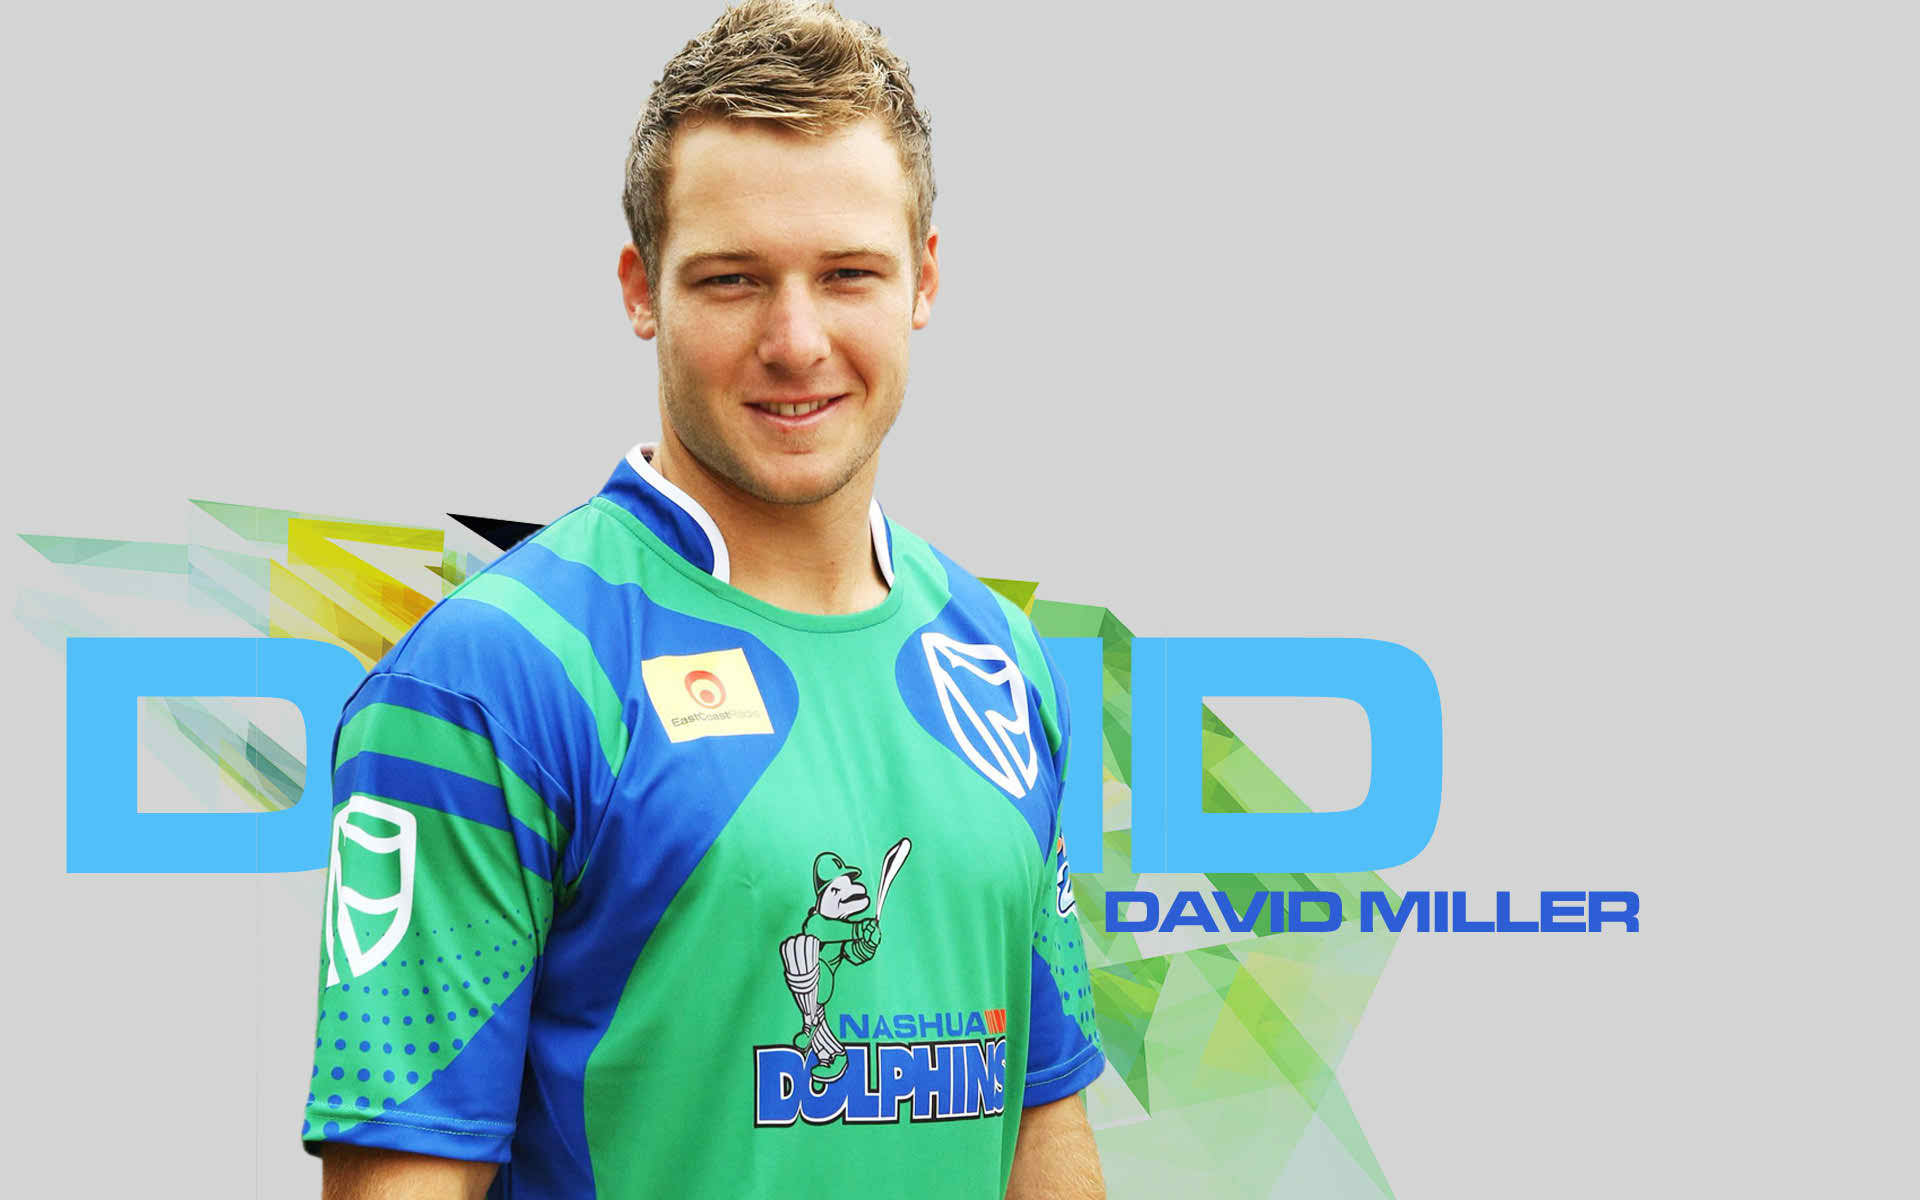 David Miller Hairstyles 2019 Haircut Name, Design Color